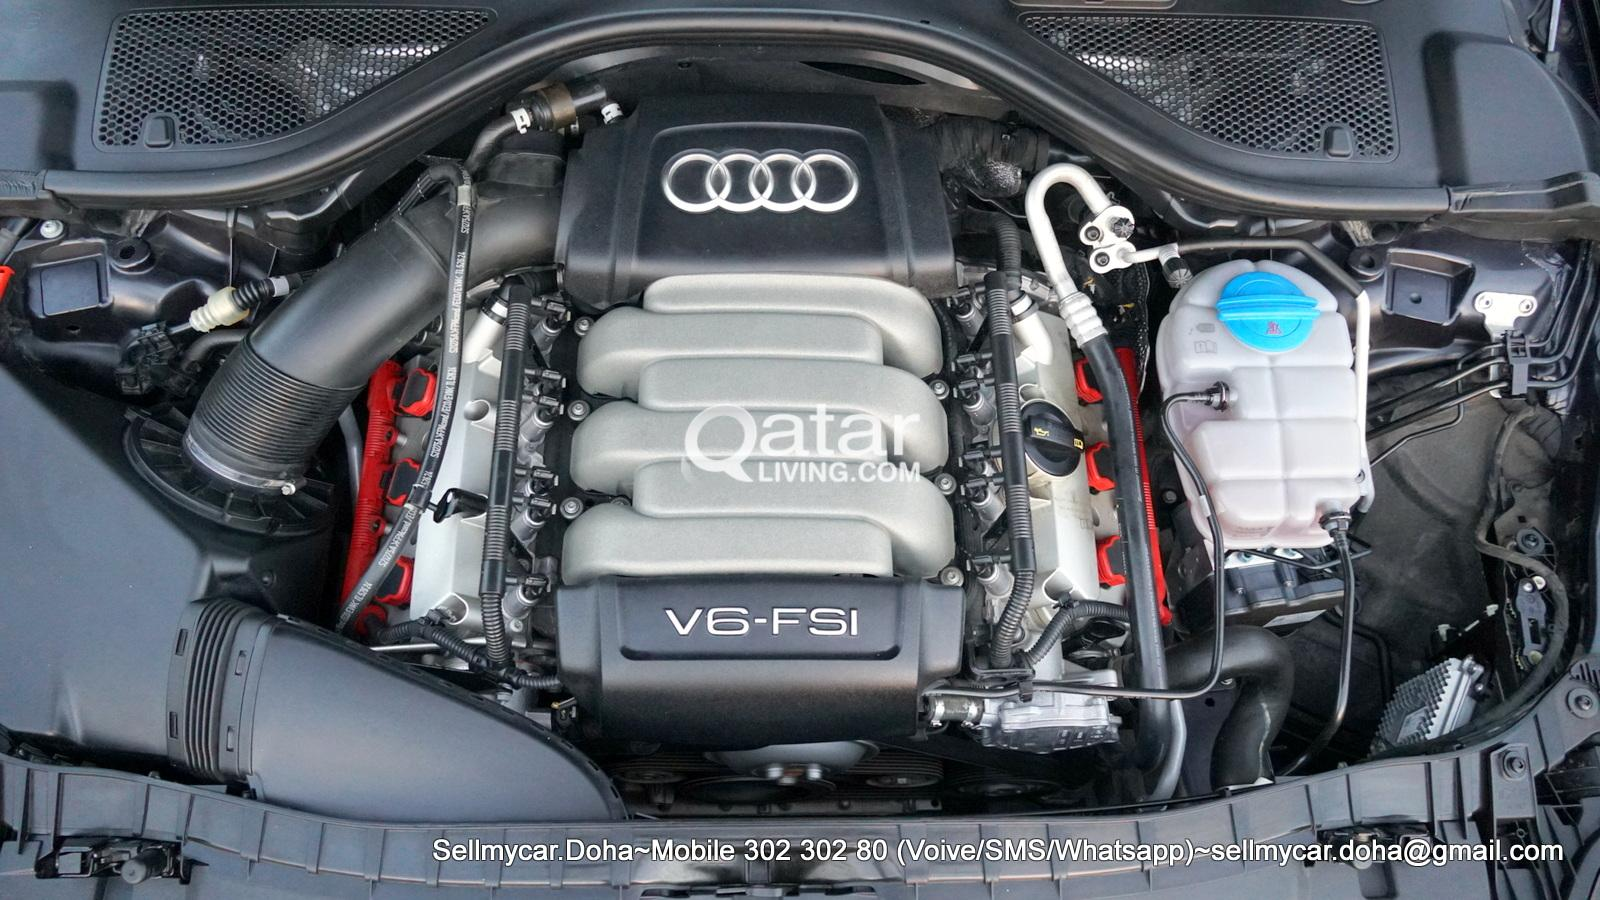 2016 Audi A6 35 Quattro S-Line (Many More Photos Available Upon Request)